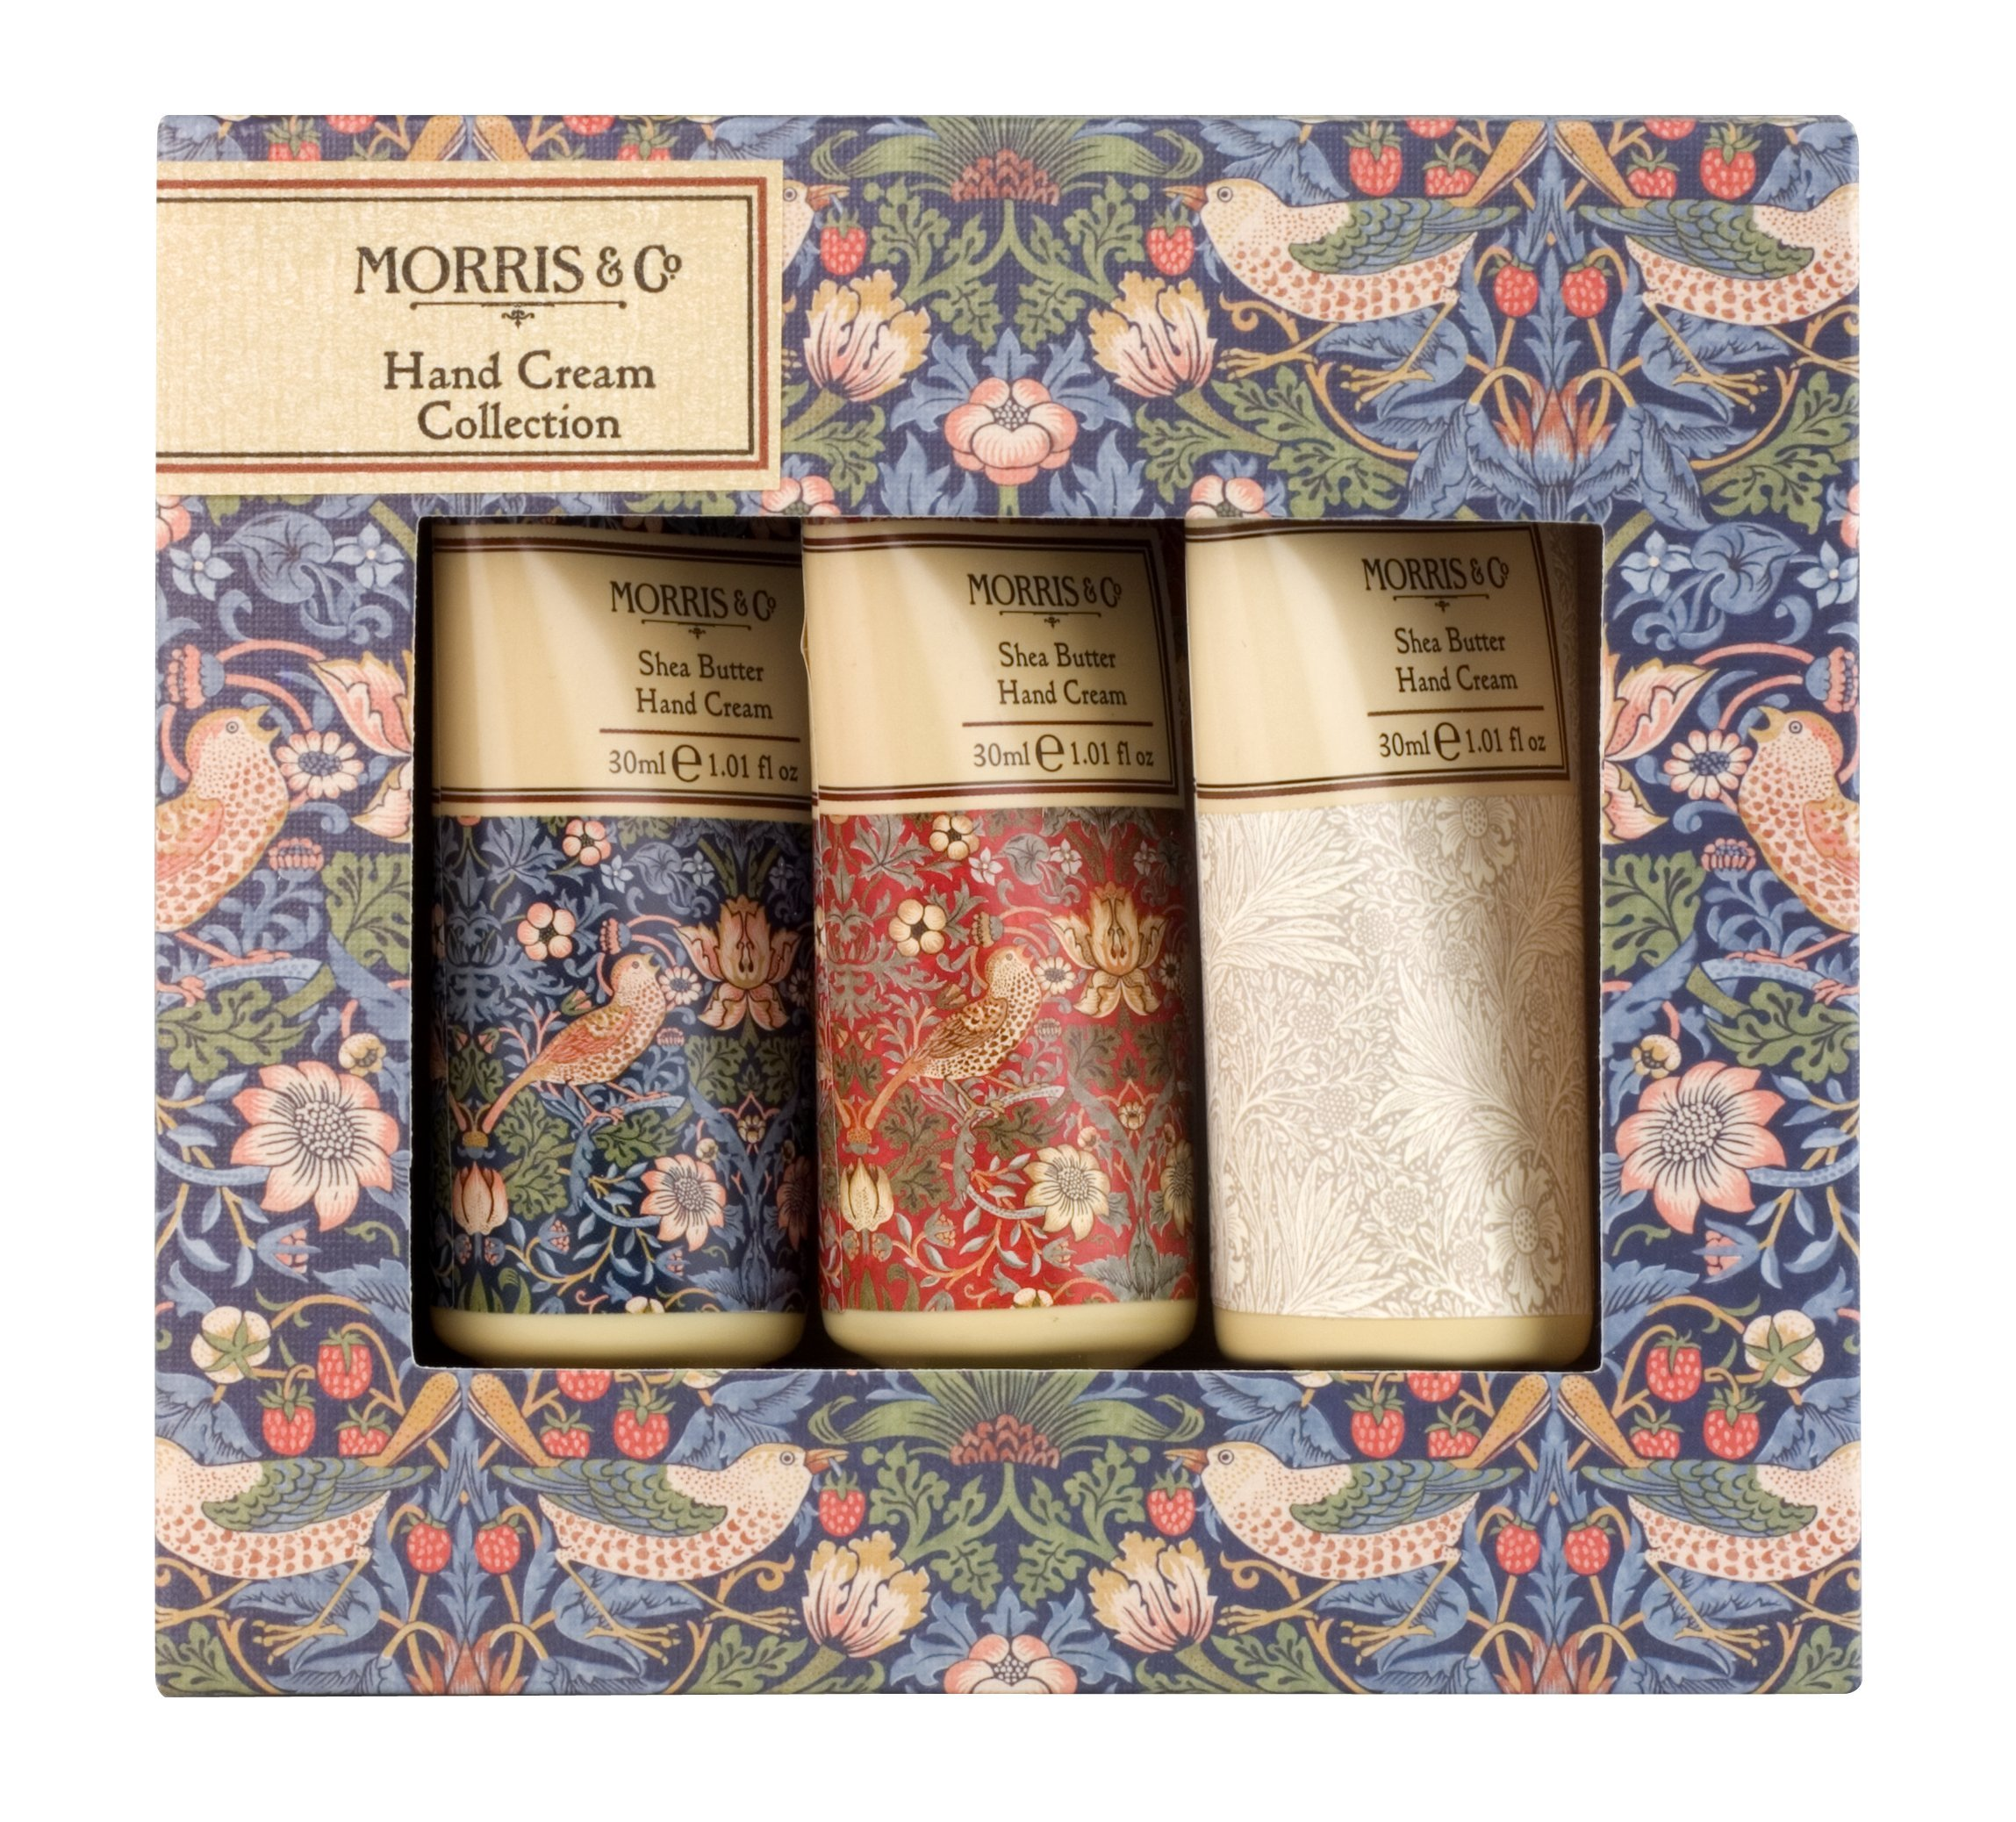 Morris & Co. Beauty Strawberry Thief Shea Butter Hand Cream Collection Gift Set, 3 x 30 ml